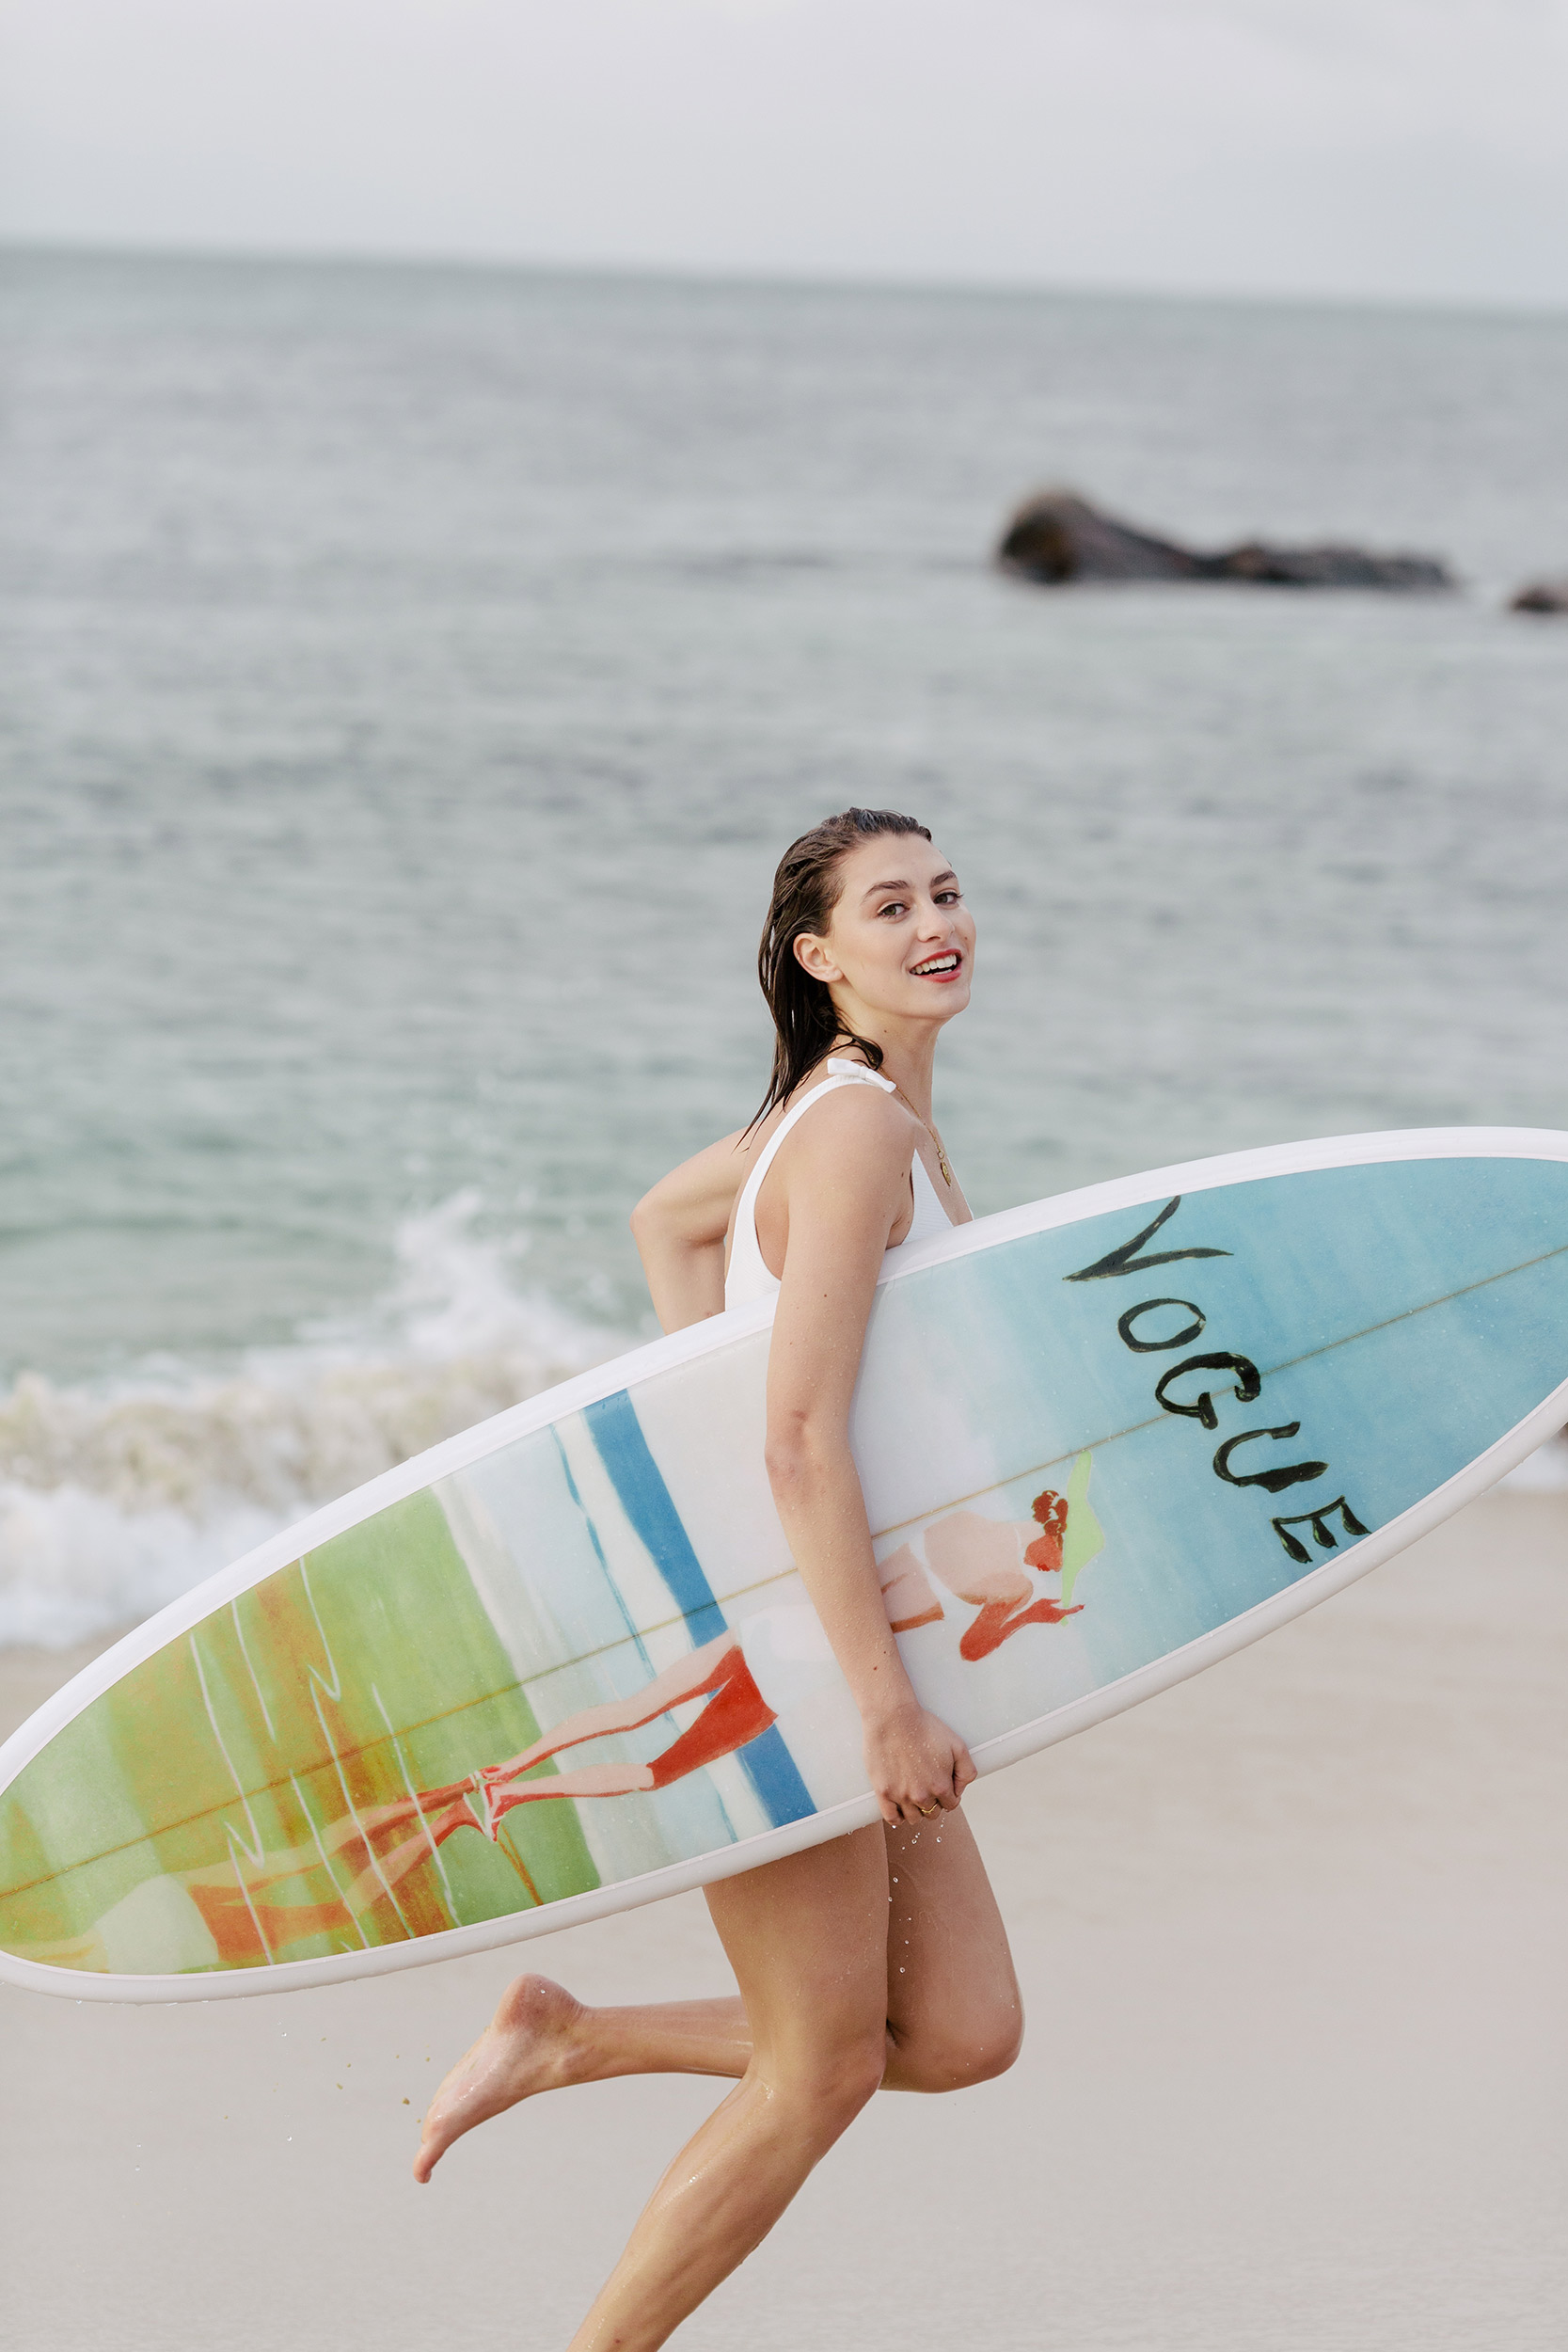 nusa-indah-surfboards-vogue-collection-eduardo-benito-2.jpg